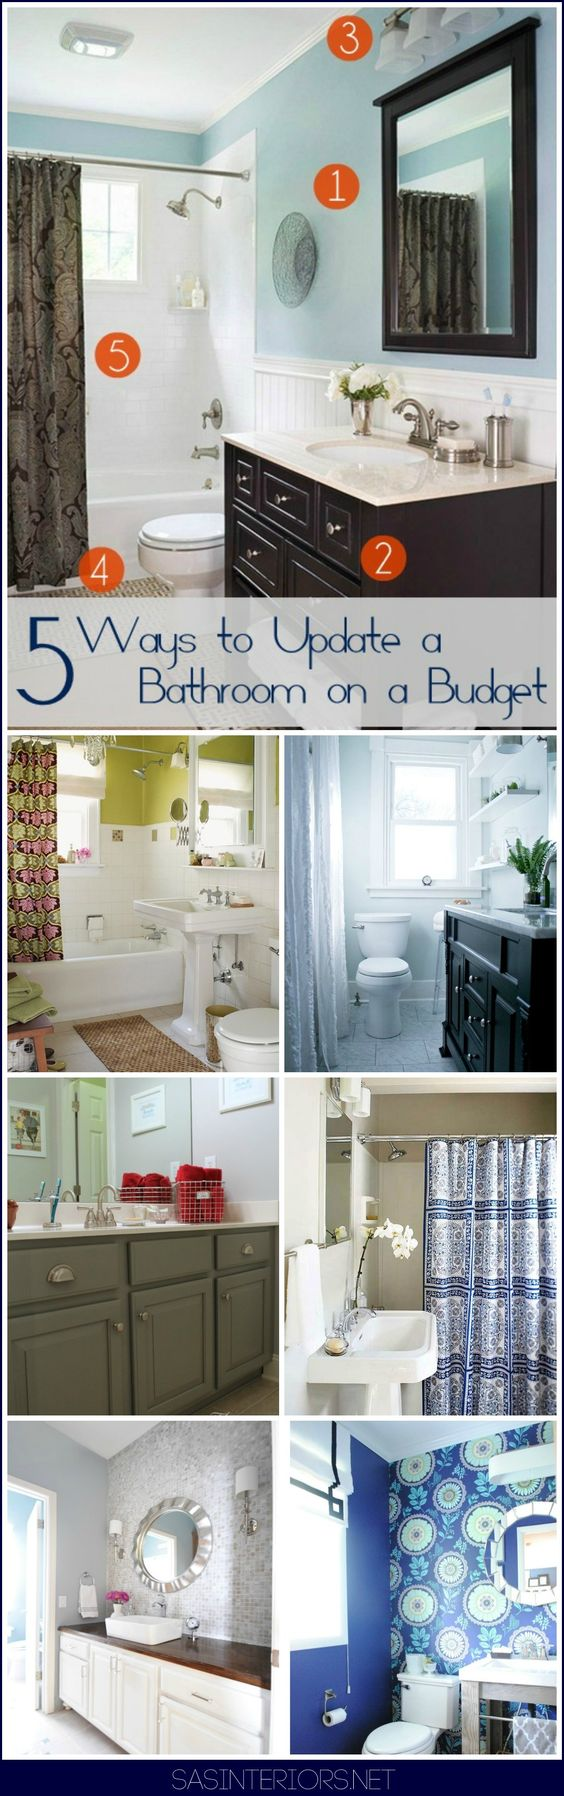 5 Ways To Upgrade A Bathroom On A Budget Don 39 T Neglect A Needed Bathroom Revamp Because Of Cost